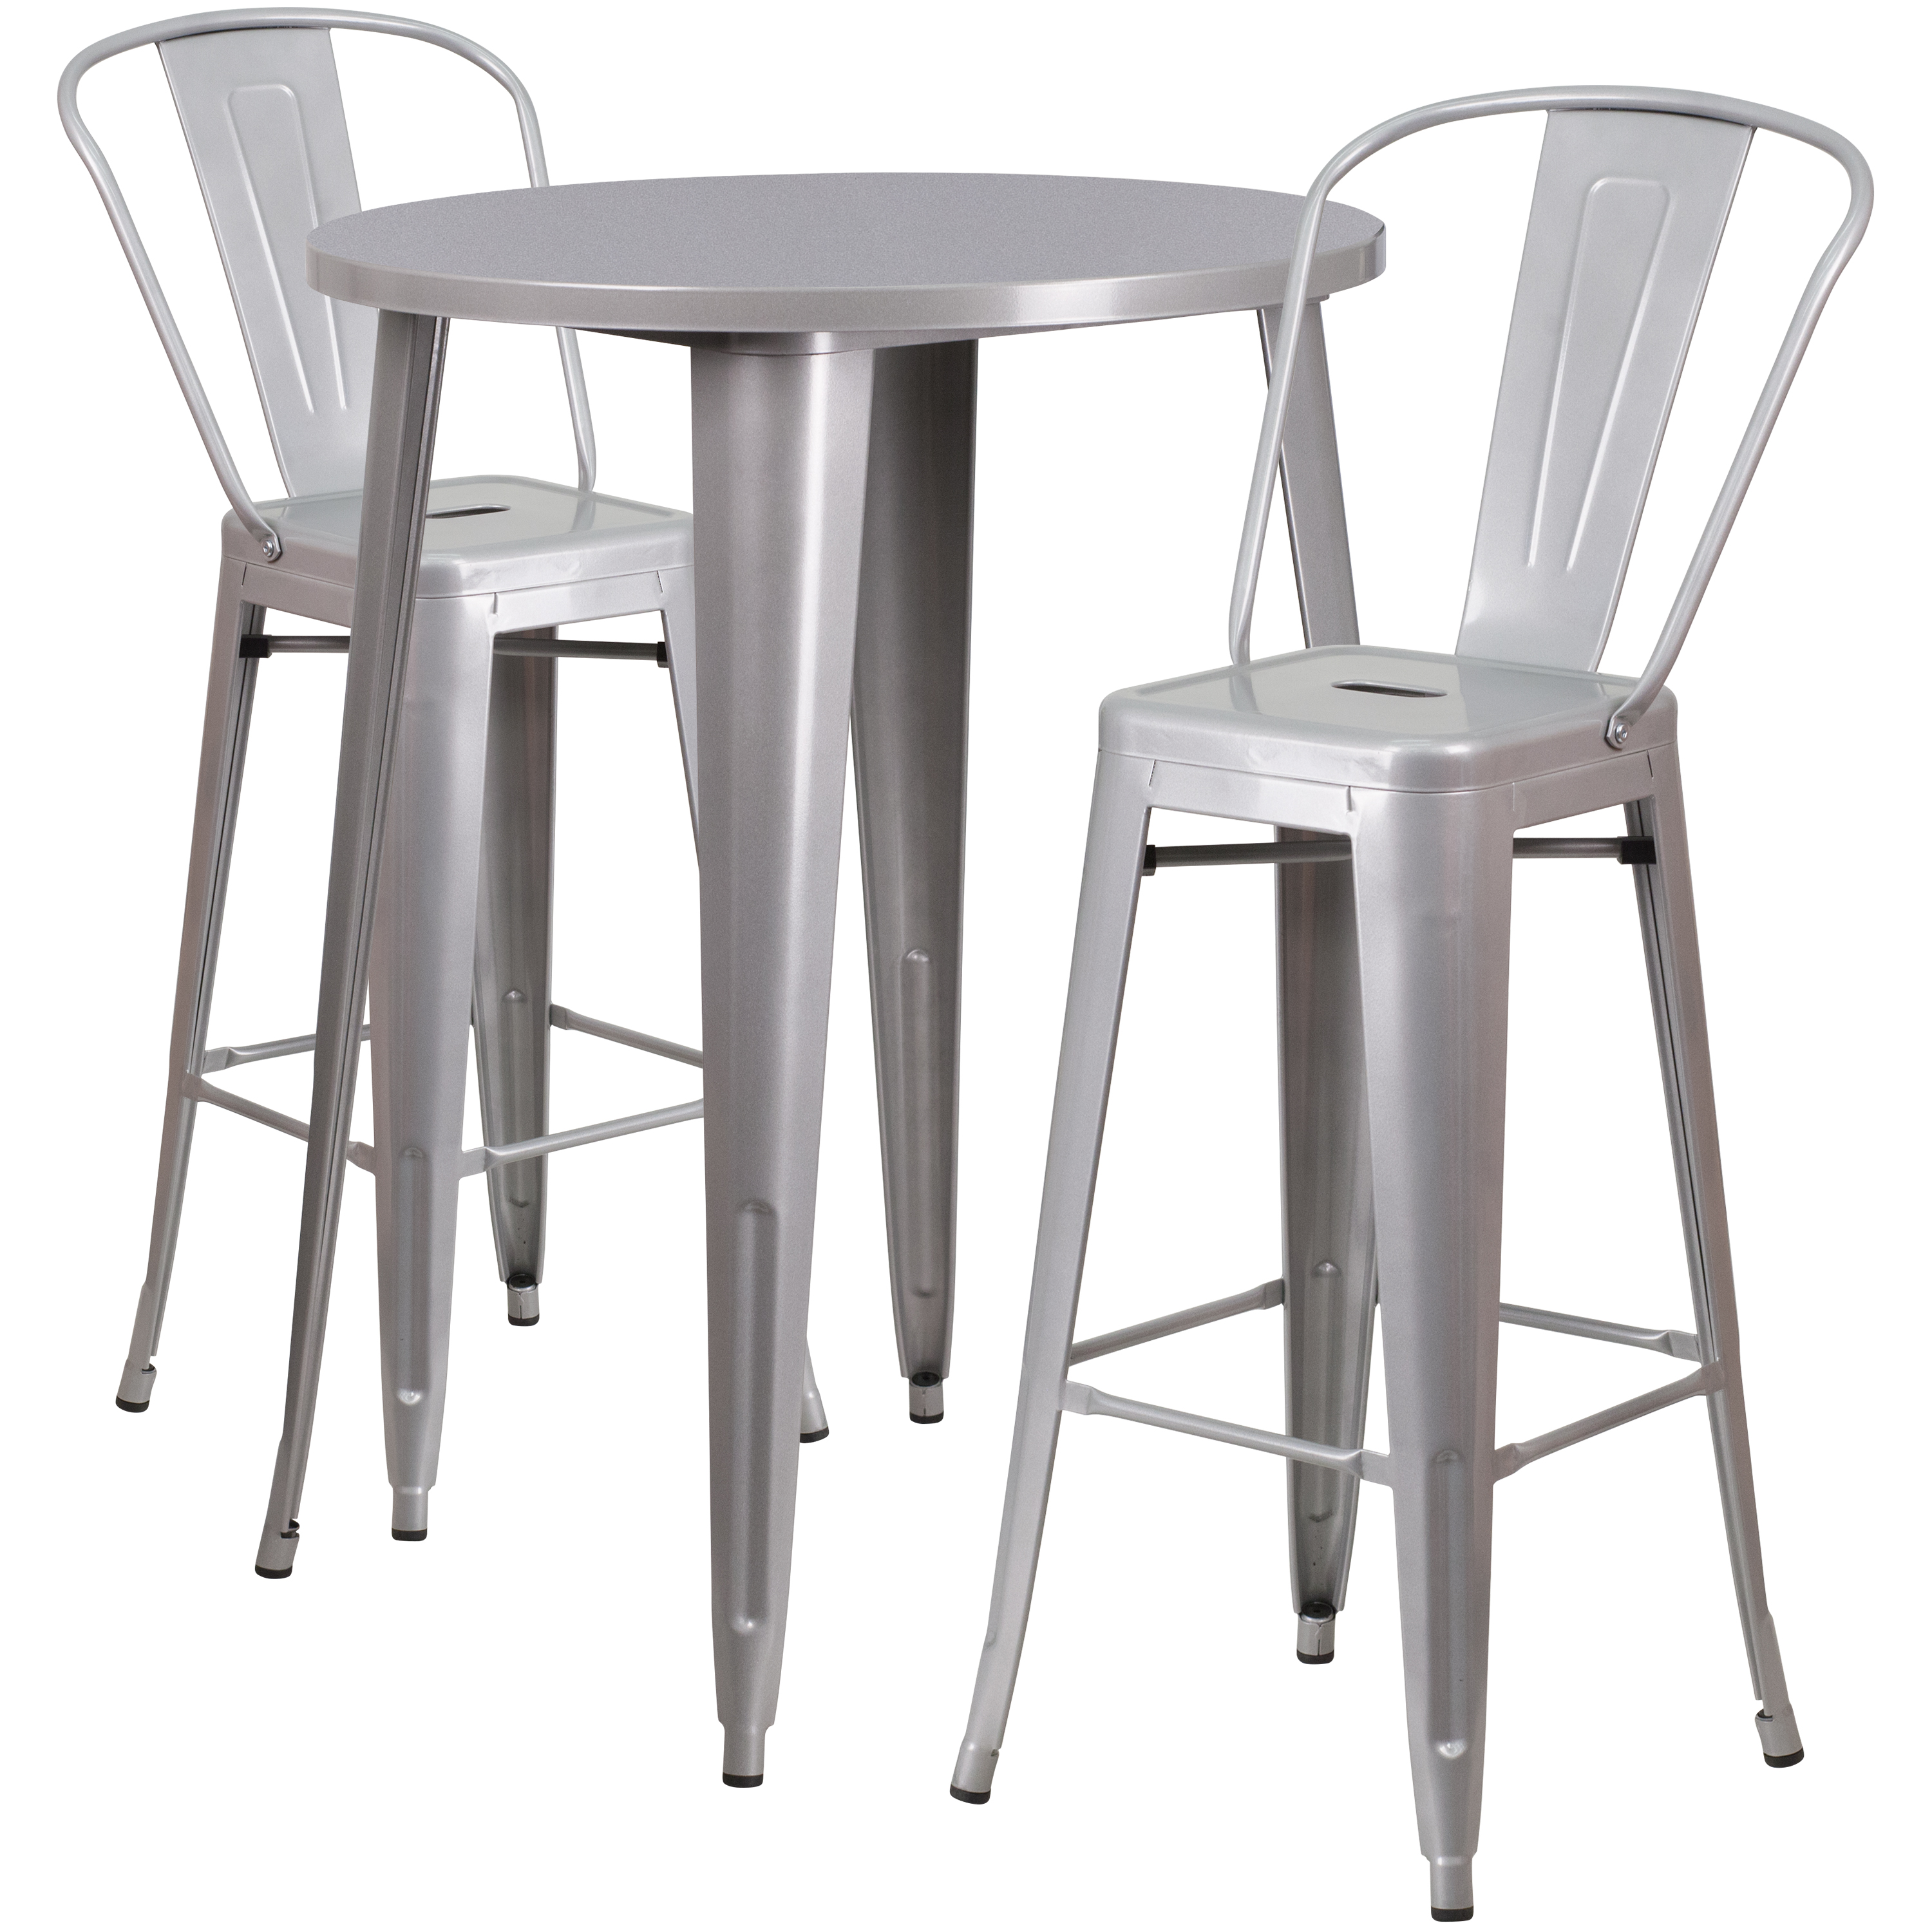 "Flash Furniture 30"" Round Metal Indoor-Outdoor Bar Table Set with 2 Cafe Barstools, Multiple Colors"